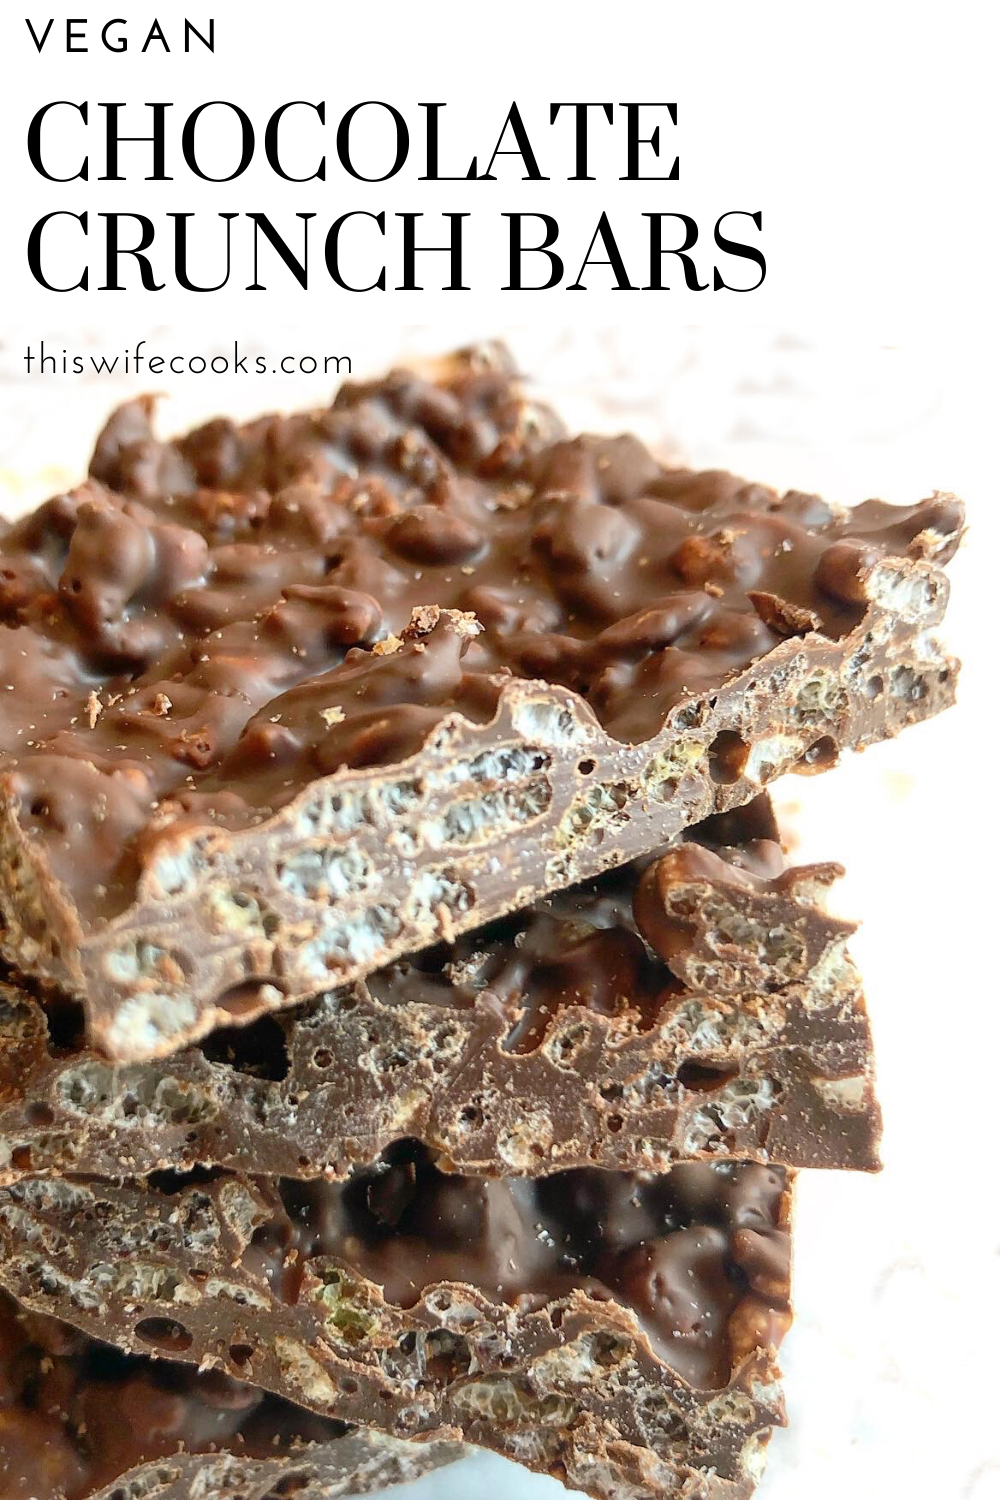 Vegan Chocolate Crunch Bars - Super quick & always popular! Perfect for holidays, class parties or any time you're craving a sweet & simple candy treat. via @thiswifecooks